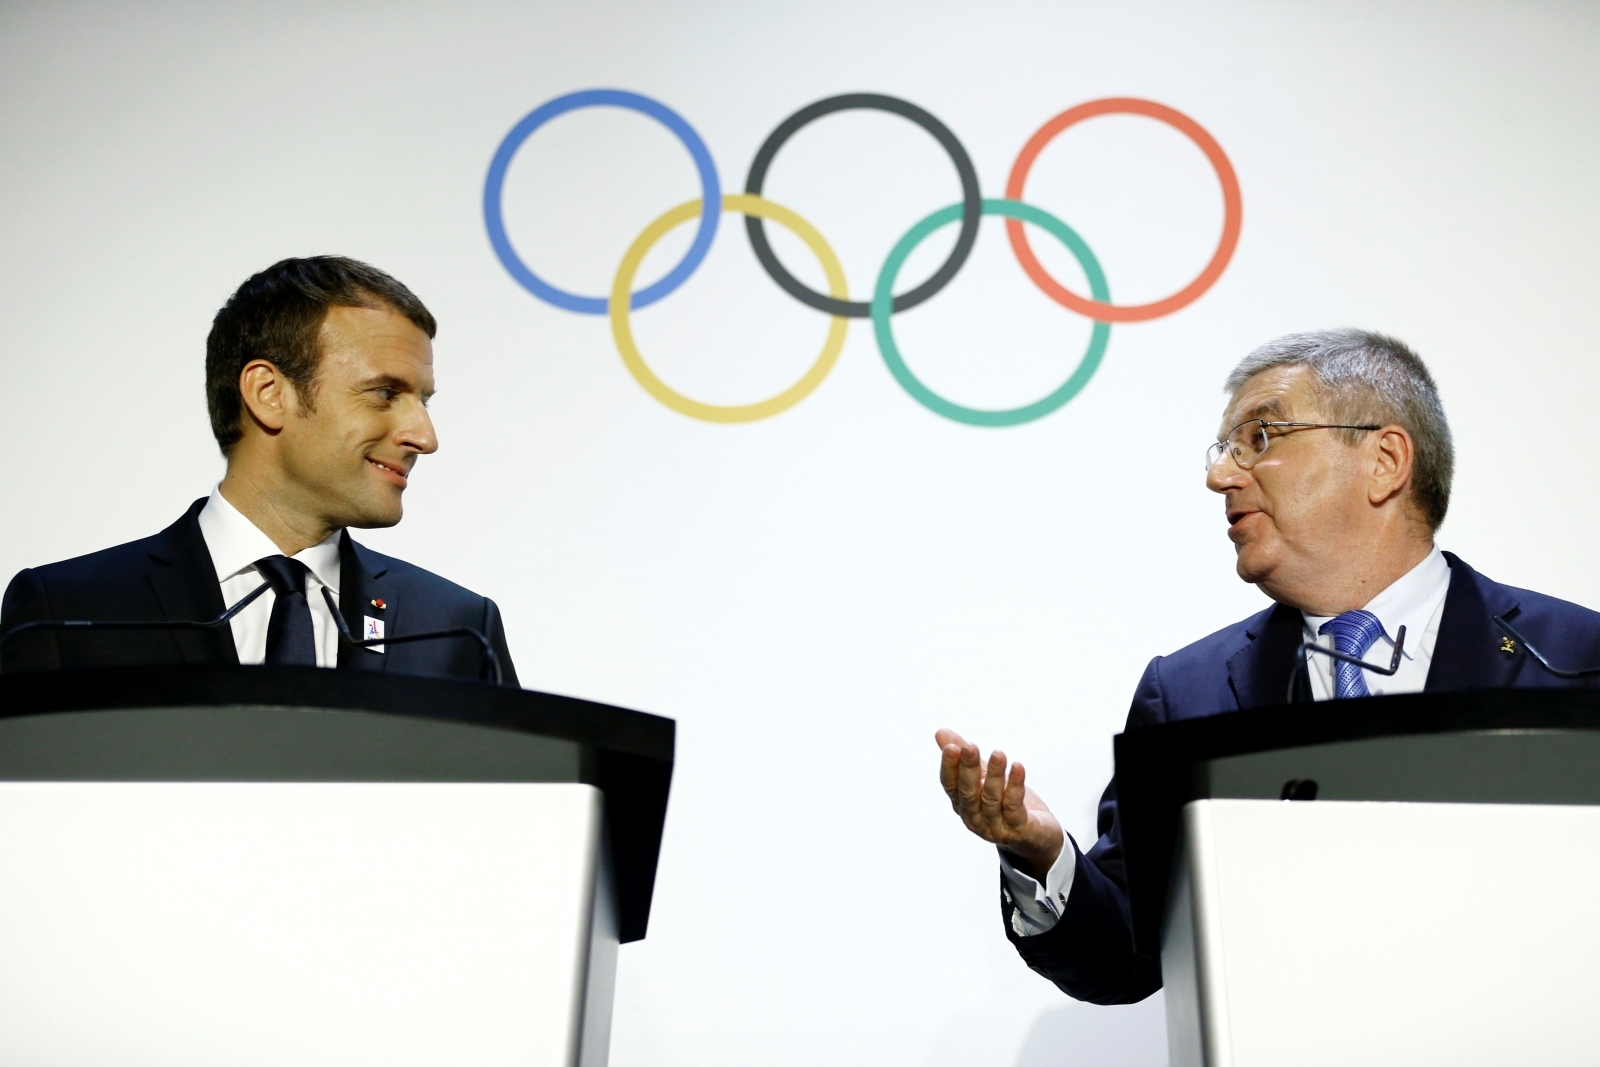 International Olympic Committee (IOC) President Thomas Bach (r) welcomes French President Emmanuel Macron (l) as head of the Paris 2024 candidate city delegation